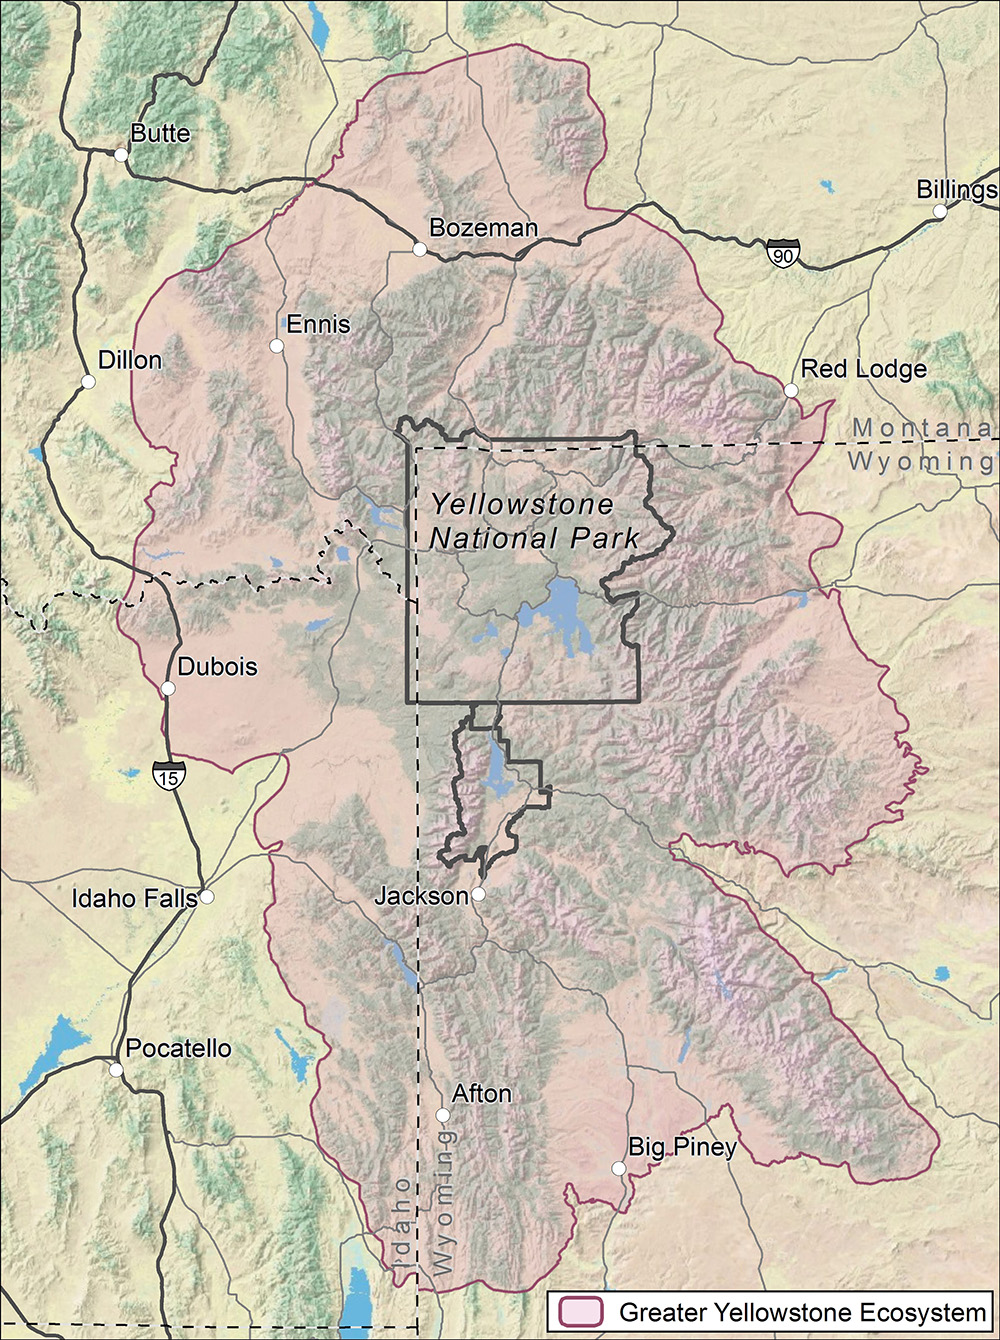 Greater Yellowstone ecosystem map courtesy of USGS.